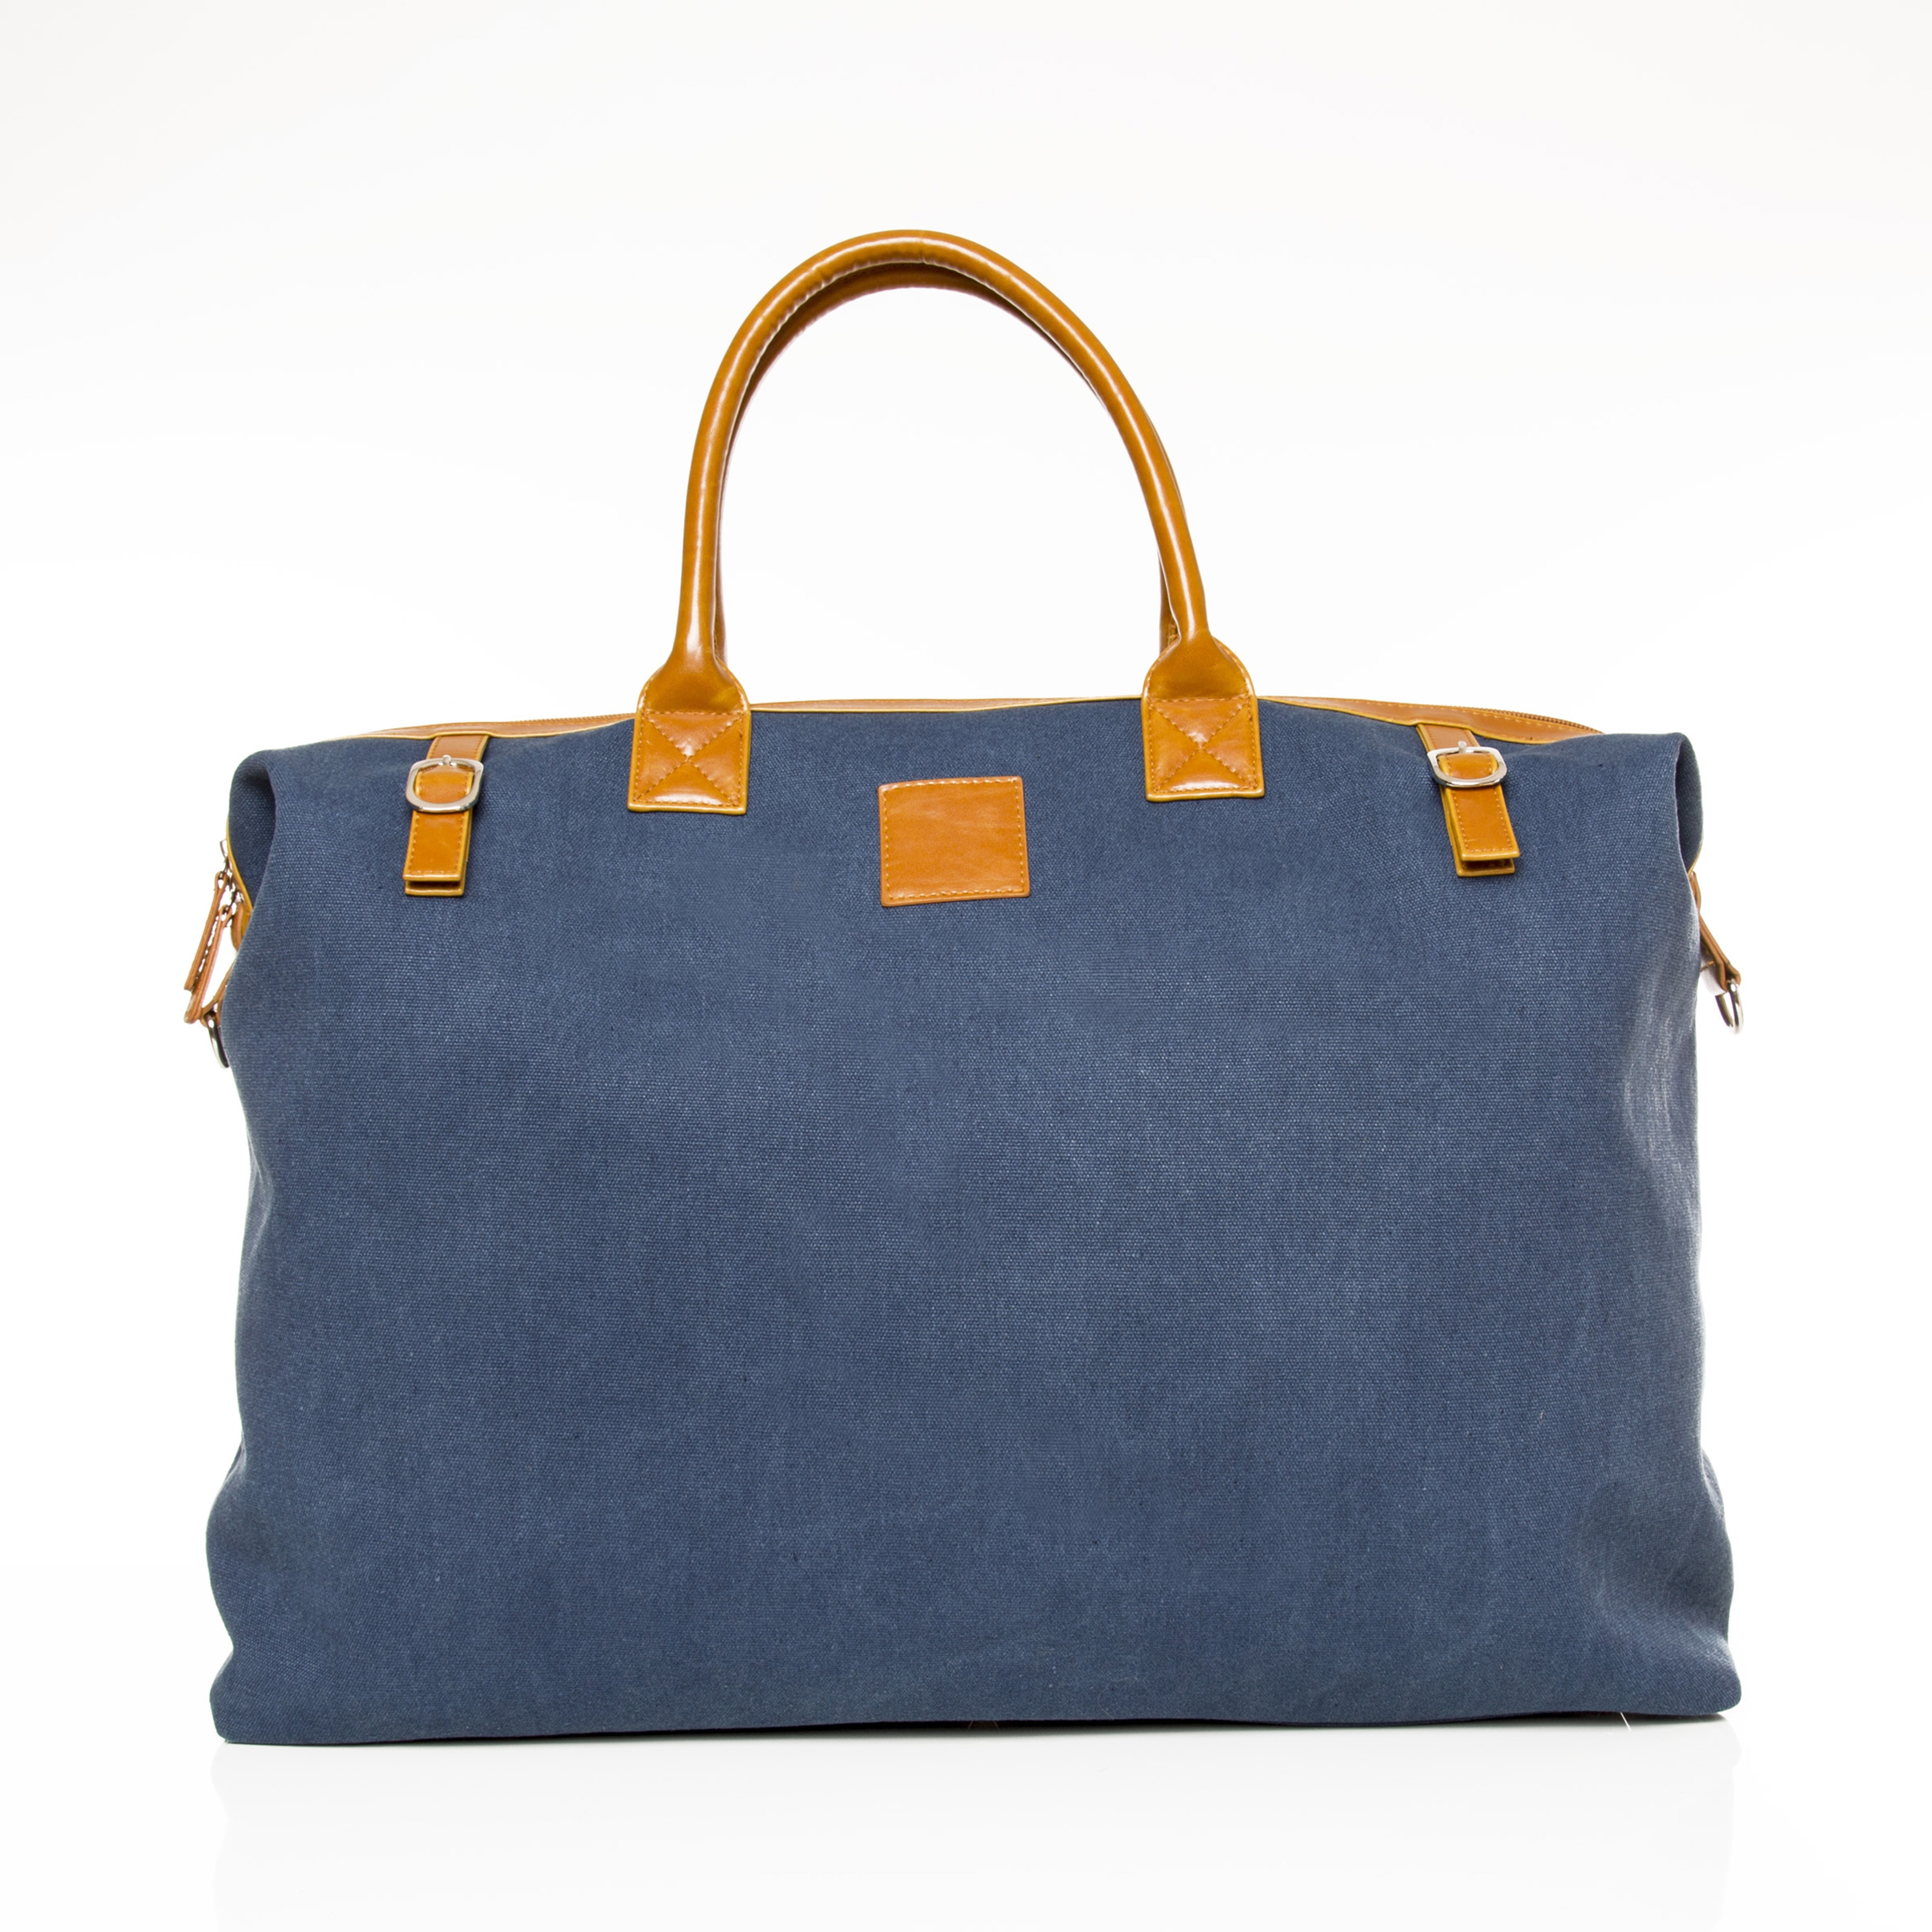 06f41fd5d9 Shop The Weekender Bag - Free Shipping Today - Overstock - 10354950